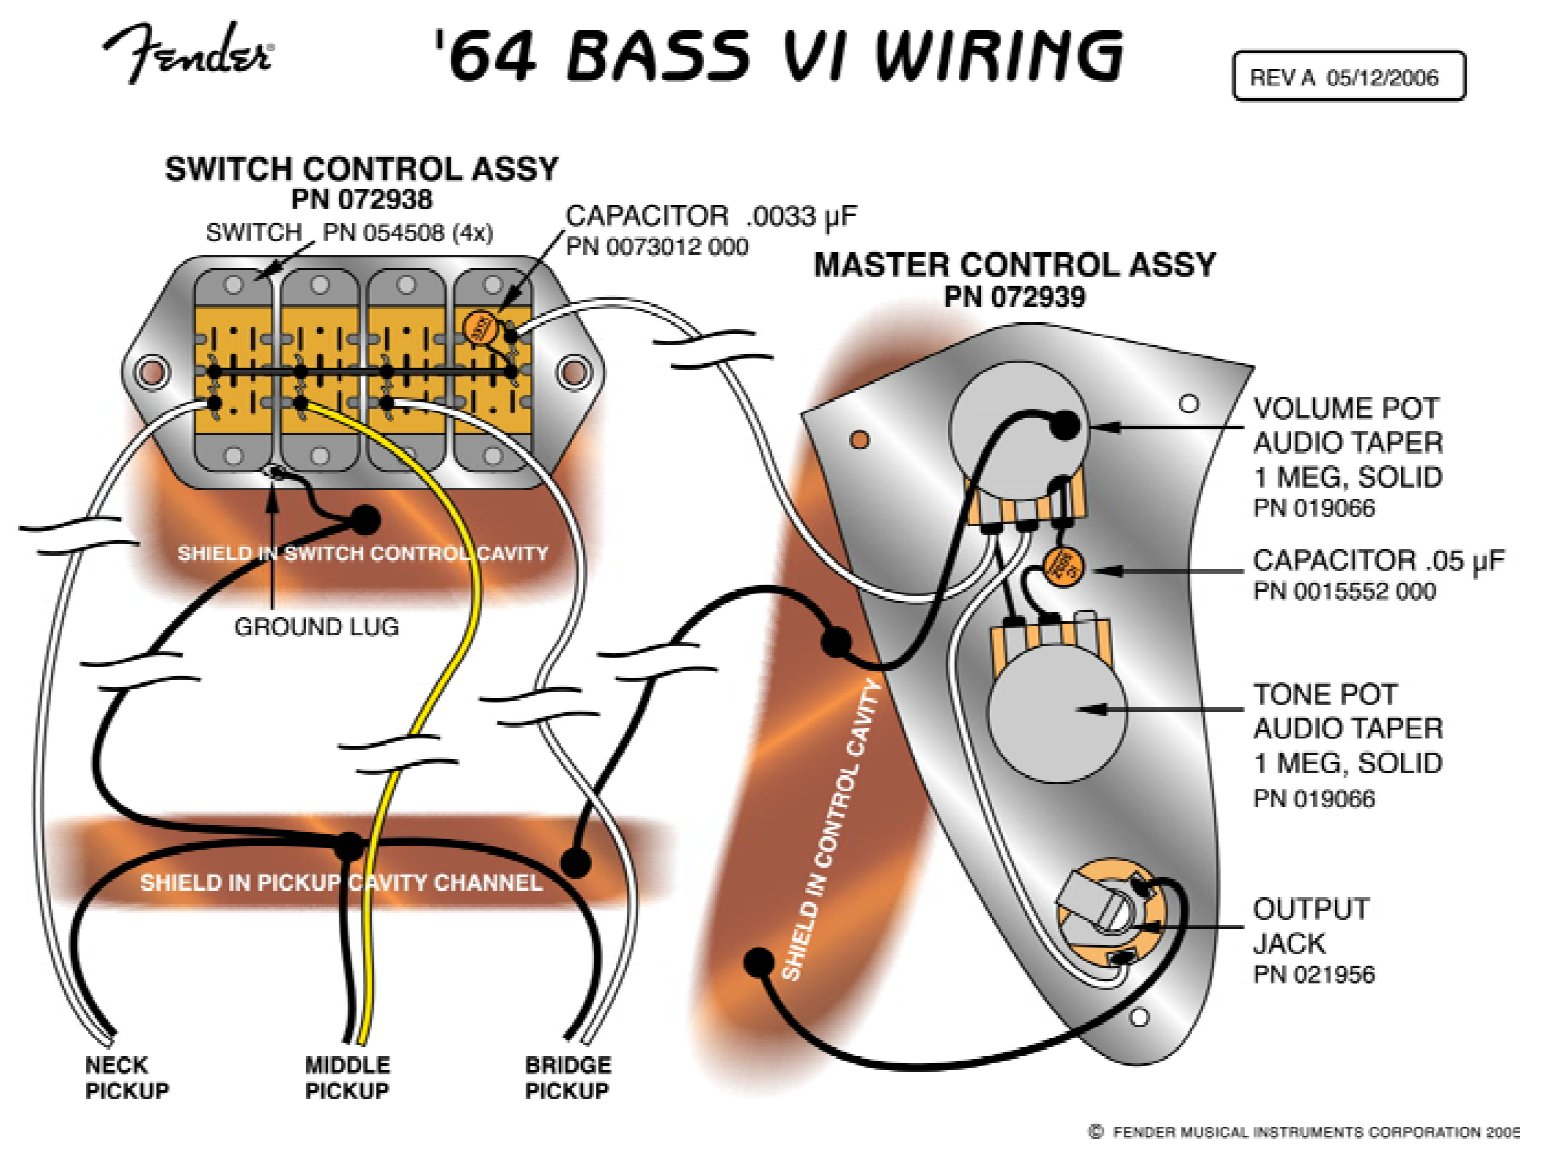 64 bass vi reissue wiring diagram jpg wiring diagram for fender mustang € the wiring diagram 1542 x 1161